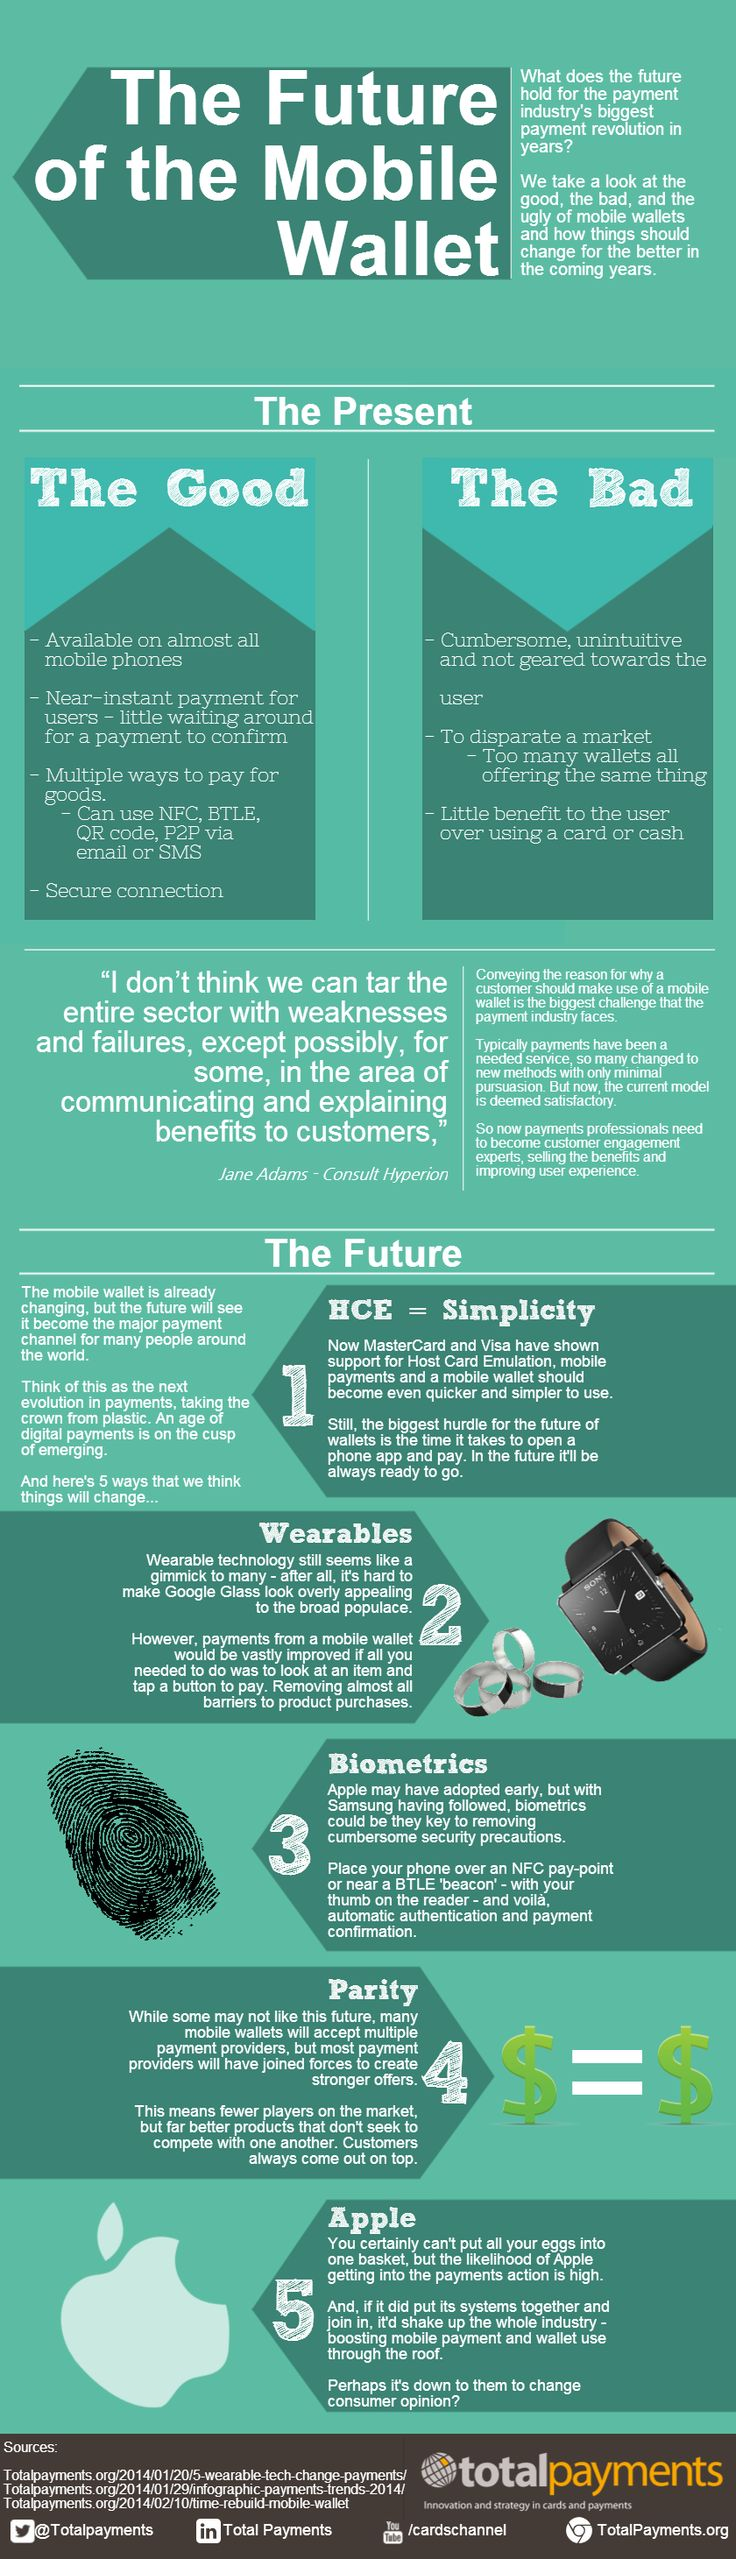 Mobile Wallet, Future, Payments, infographic, total payments